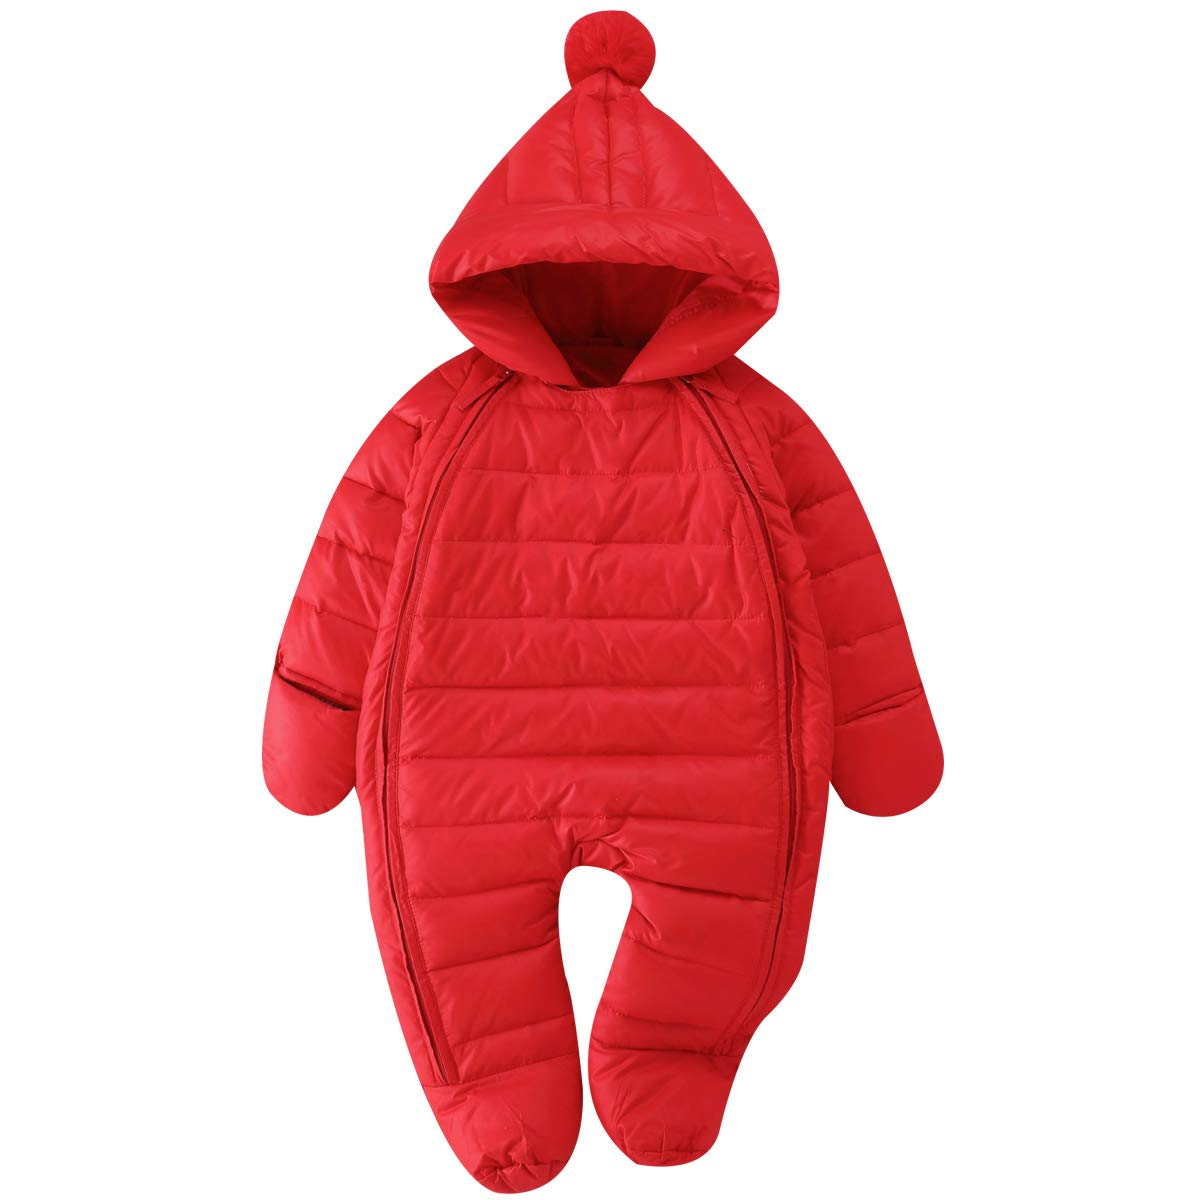 Bebone Newborn Baby Hooded Winter Puffer Snowsuit with Shoes and Gloves (RED,3-6M) by Bebone